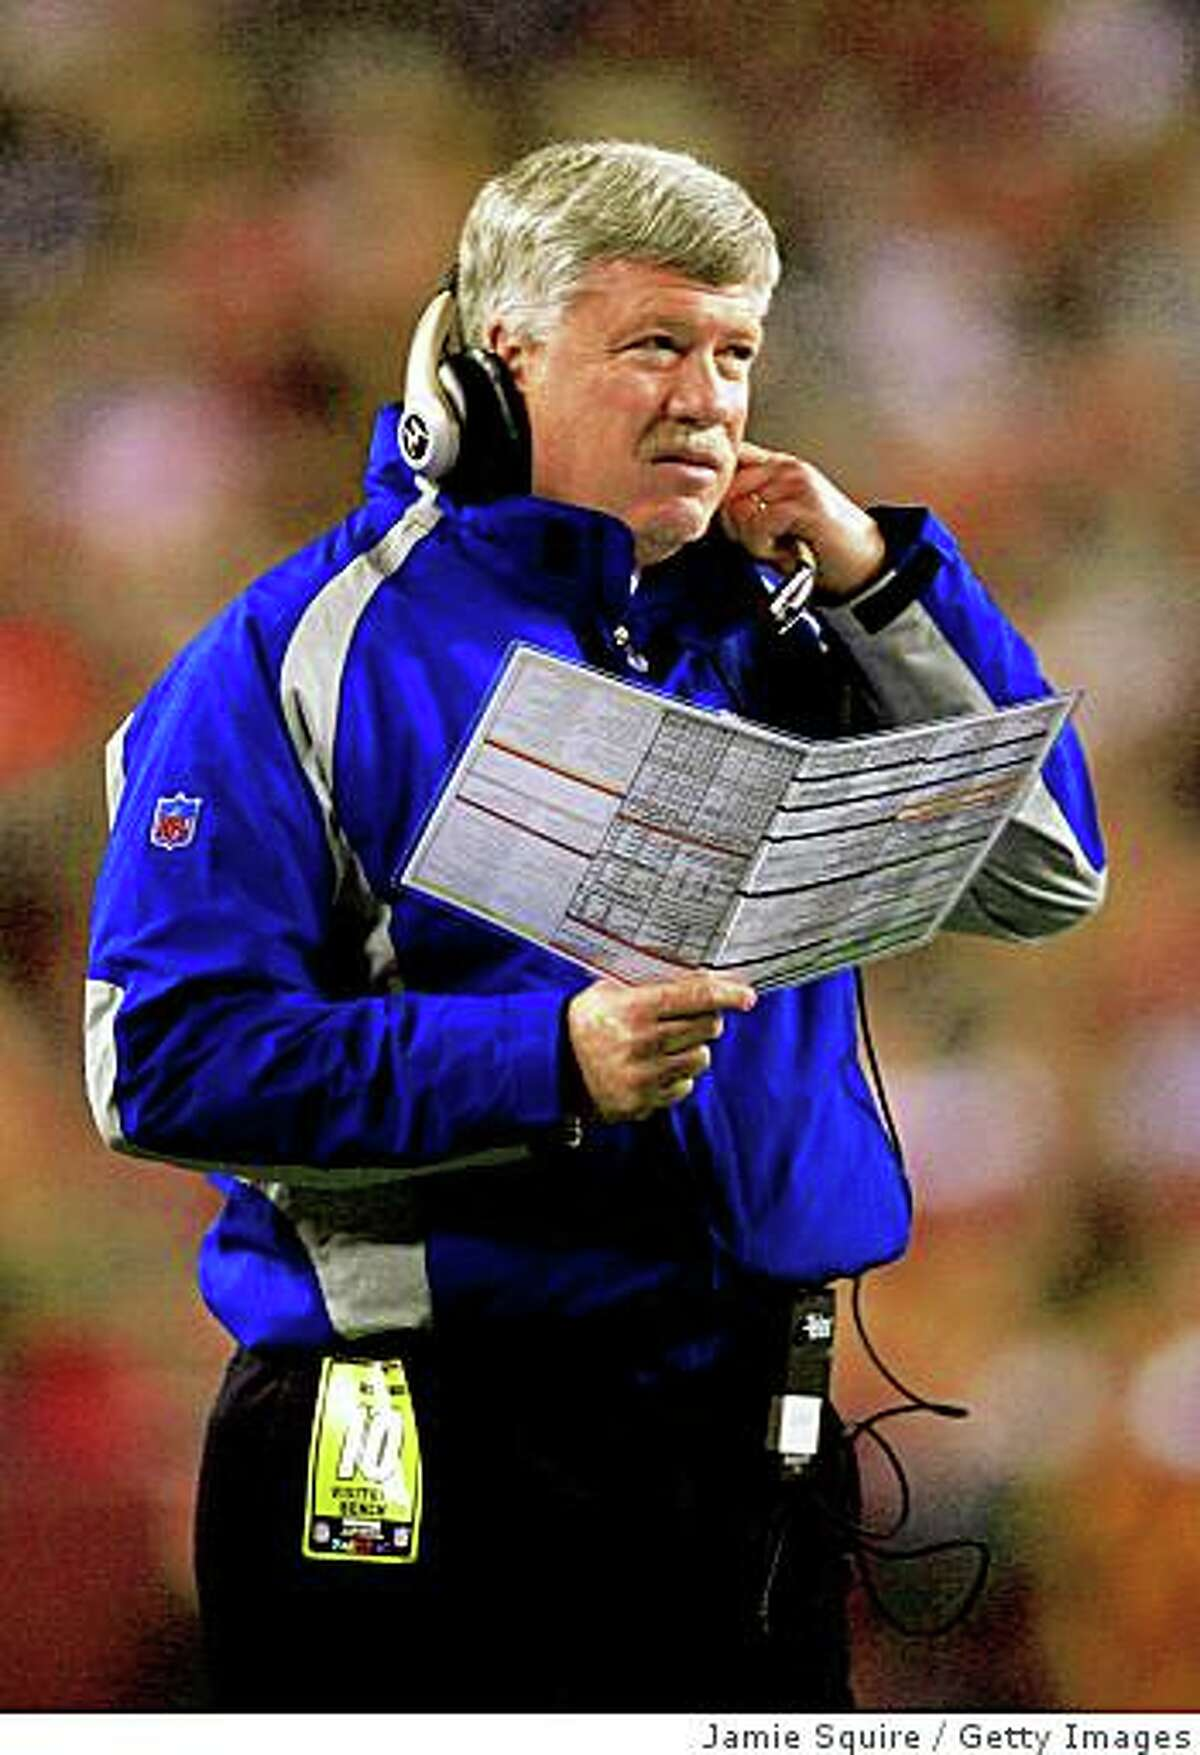 LANDOVER, MD - DECEMBER 30: Quarterbacks coach Kevin Gilbride looks on from the sidelines against the Washington Redskins at FedEx Field on December 30, 2006 in Landover, Maryland. (Photo by Jamie Squire/Getty Images)